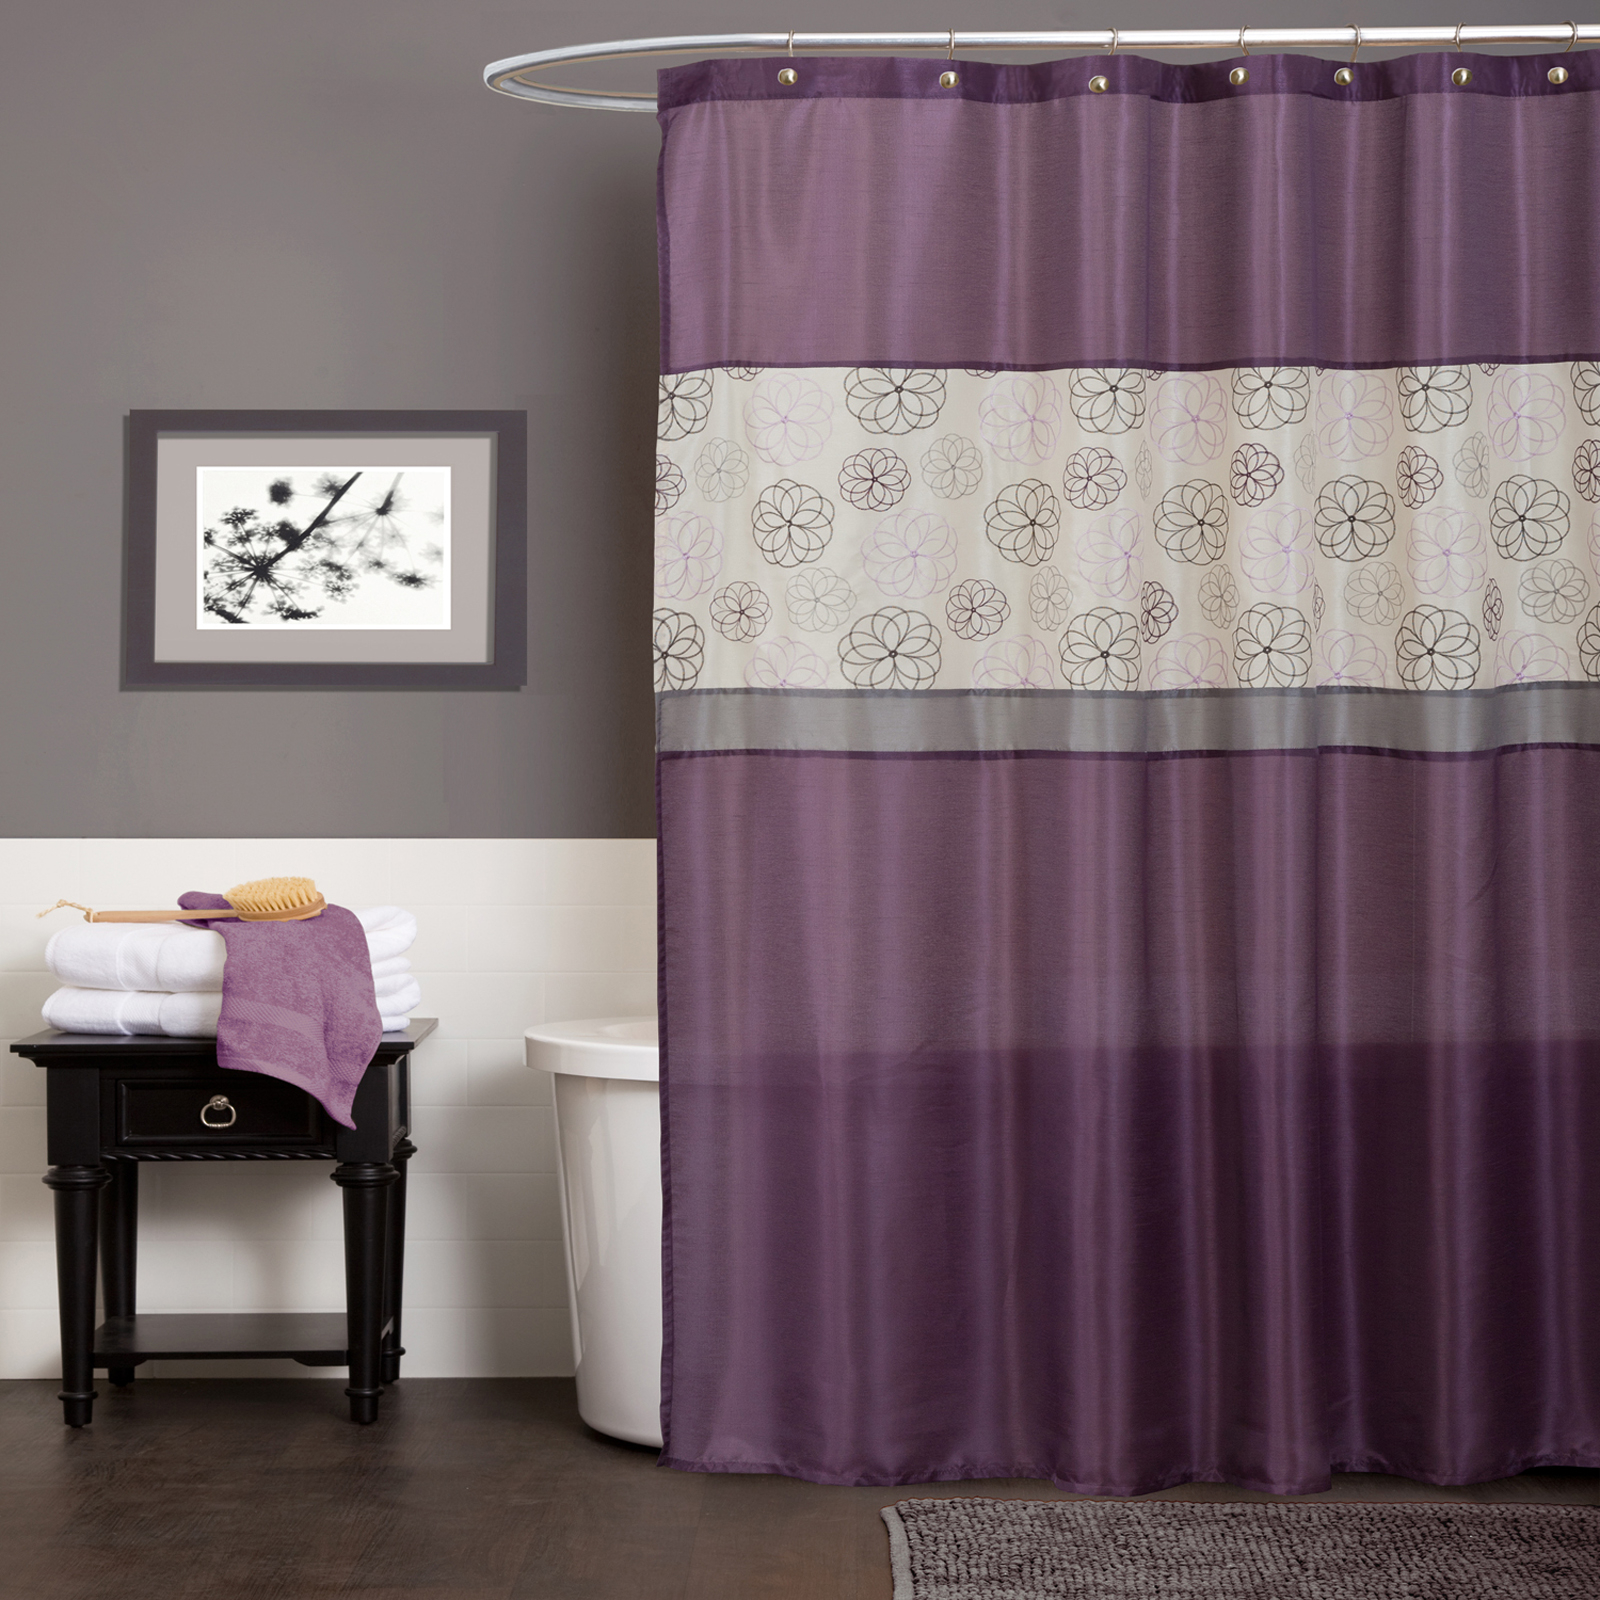 Floral Shower Curtain Kmart Com Covina Purple Idolza With Regard To Sizing 1600 X